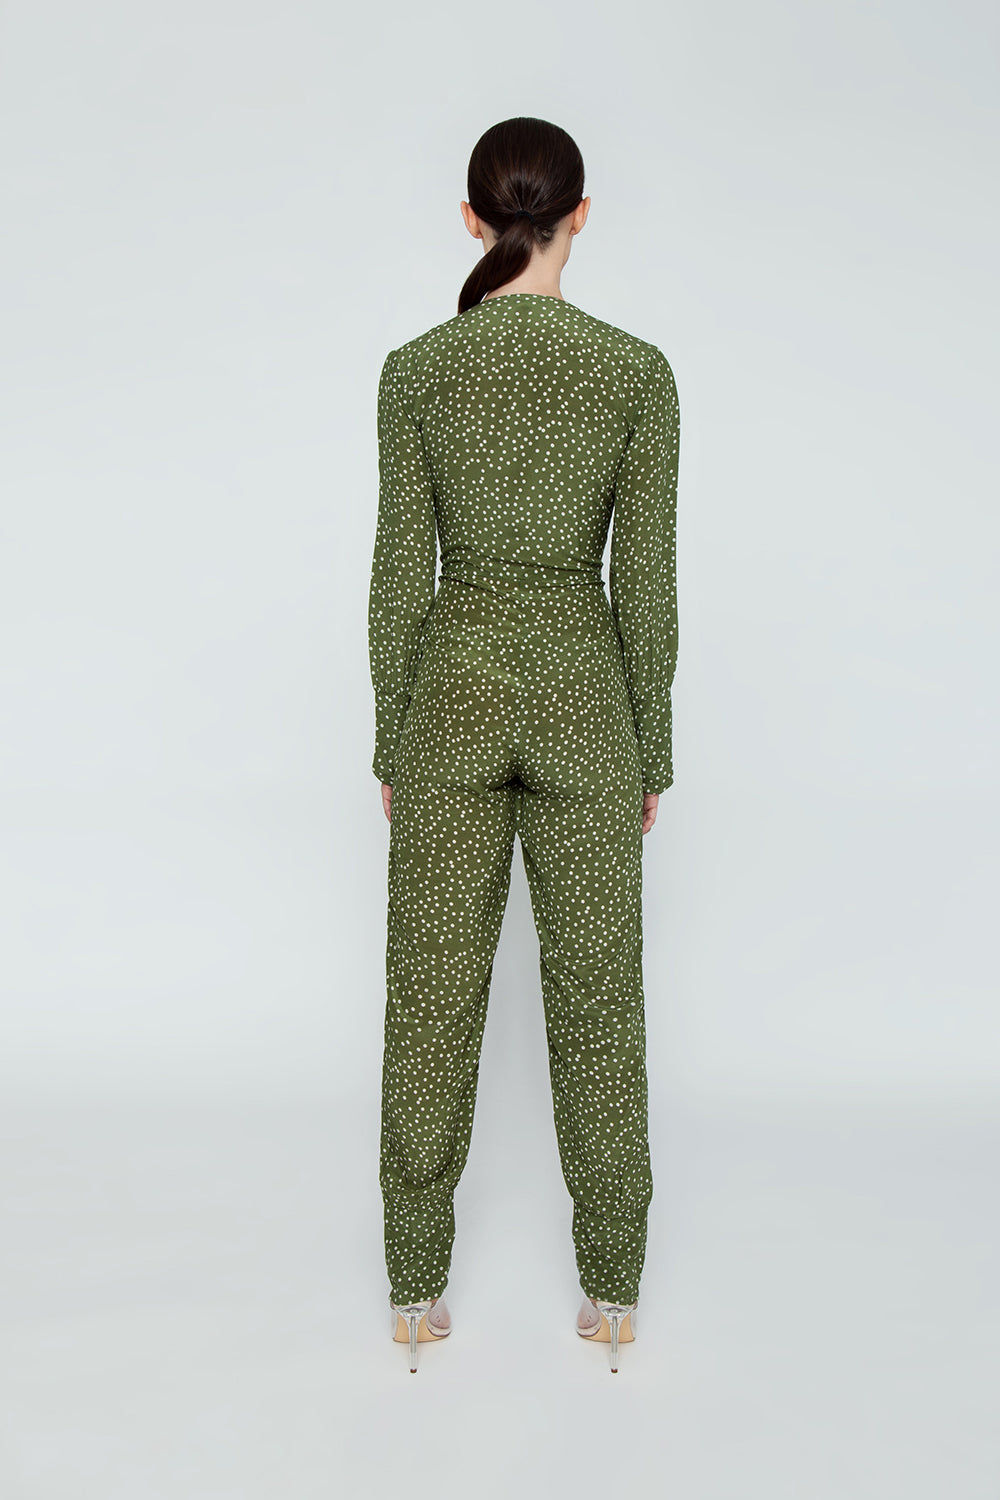 ADRIANA DEGREAS Silk Crepe De Chine Jumpsuit - Mille Punti Green Dot Print Jumpsuit | Mille Punti Green Dot Print| Adriana Degreas Silk Crepe De Chine Jumpsuit - Mille Punti Green Dot Print. Features:  Plunging v neckline Ties at front Long sleeves Main: 100% Silk.   Back View